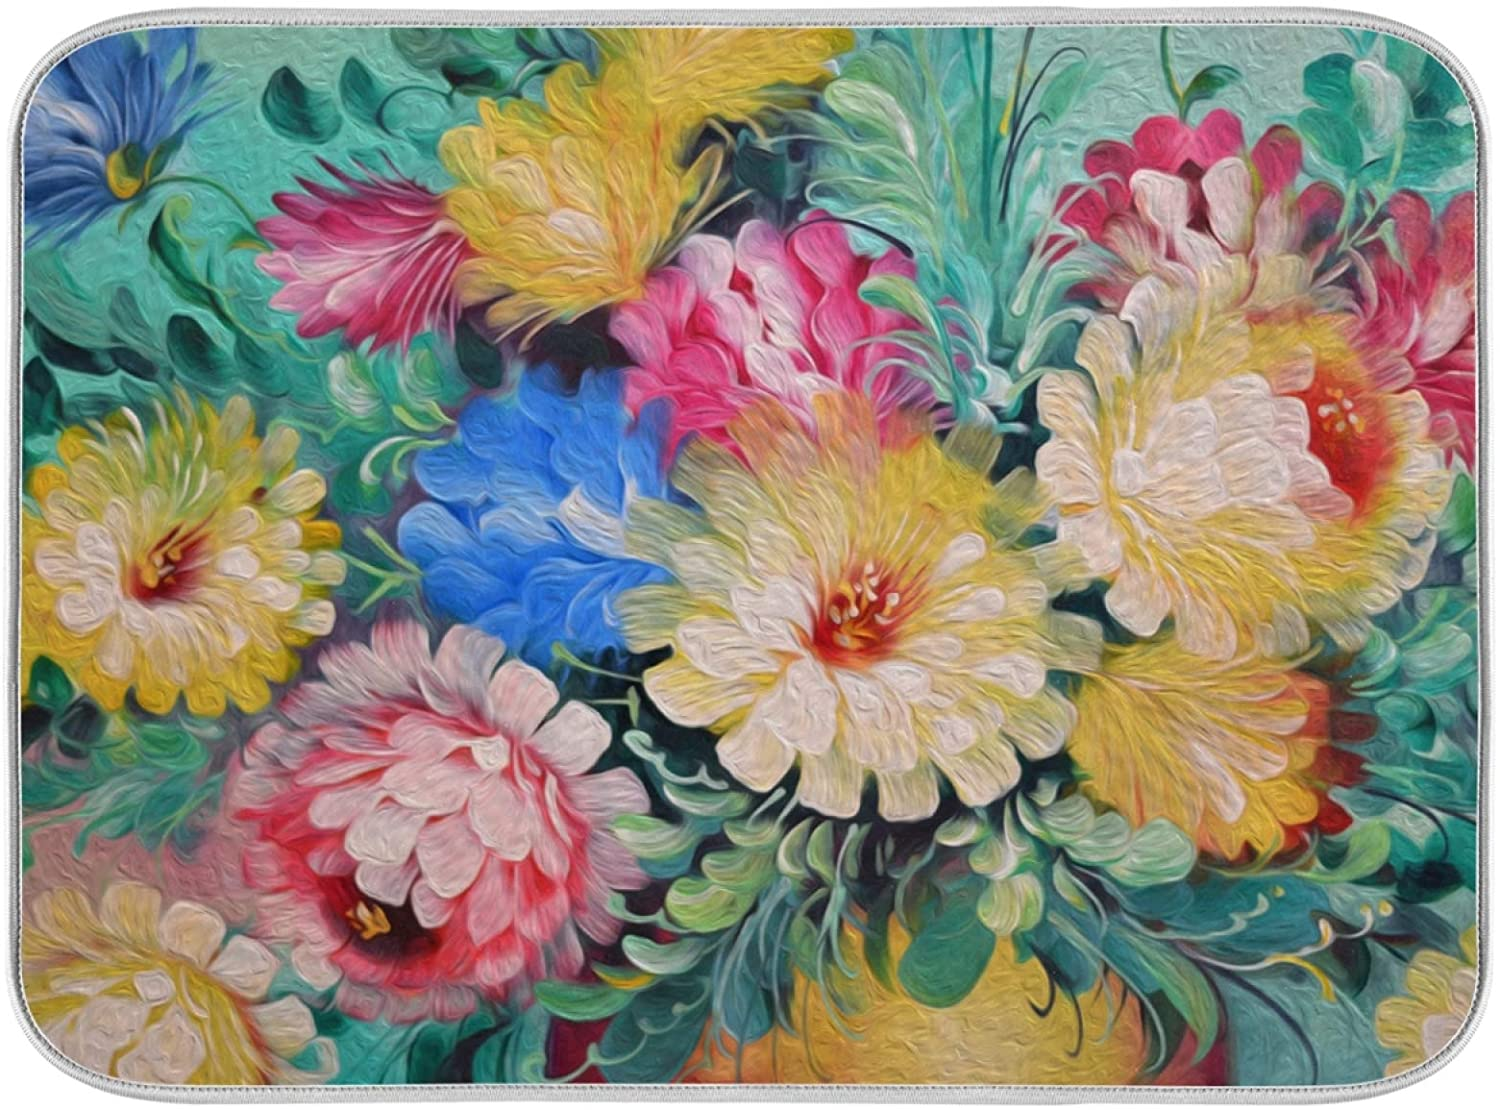 Dish Drying Mat for Kitchen Oil Painting Vintage Flower Absorbent Heat Resistant Dishes Drainer Pad 18 x 24 Inch